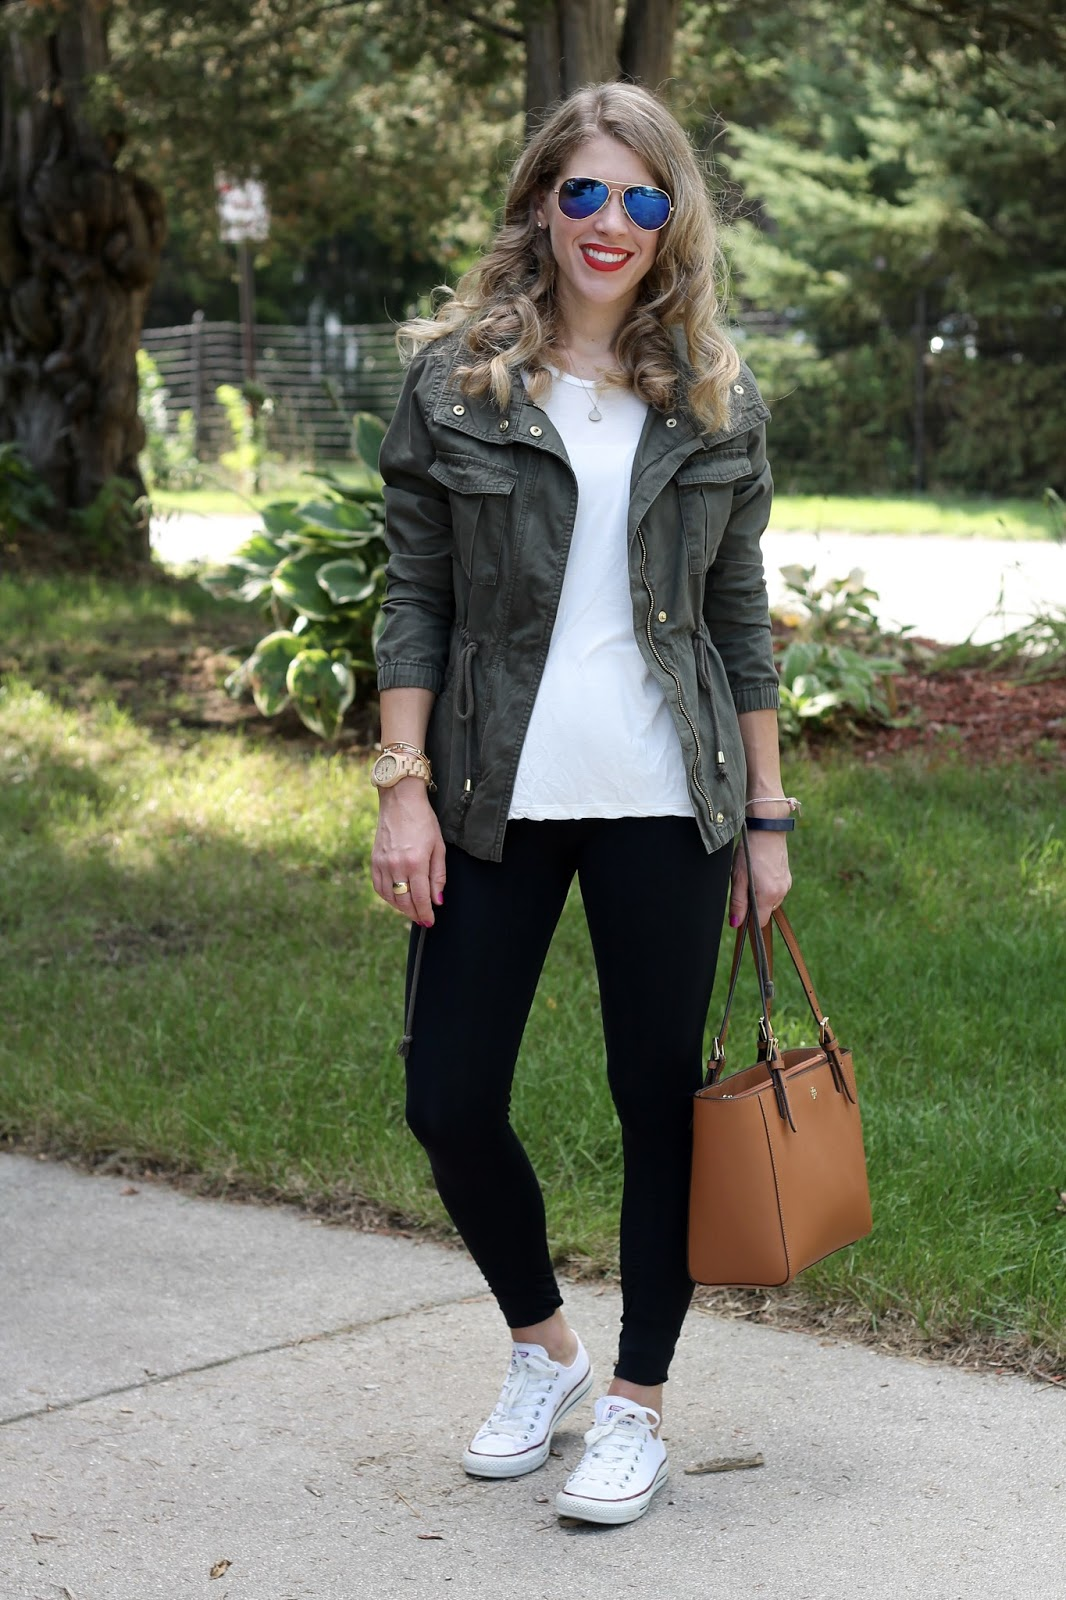 athleisure look with leggings, sweetflexx leggings review, leggings, olive utility jacket, white tee, Tory Burch tote